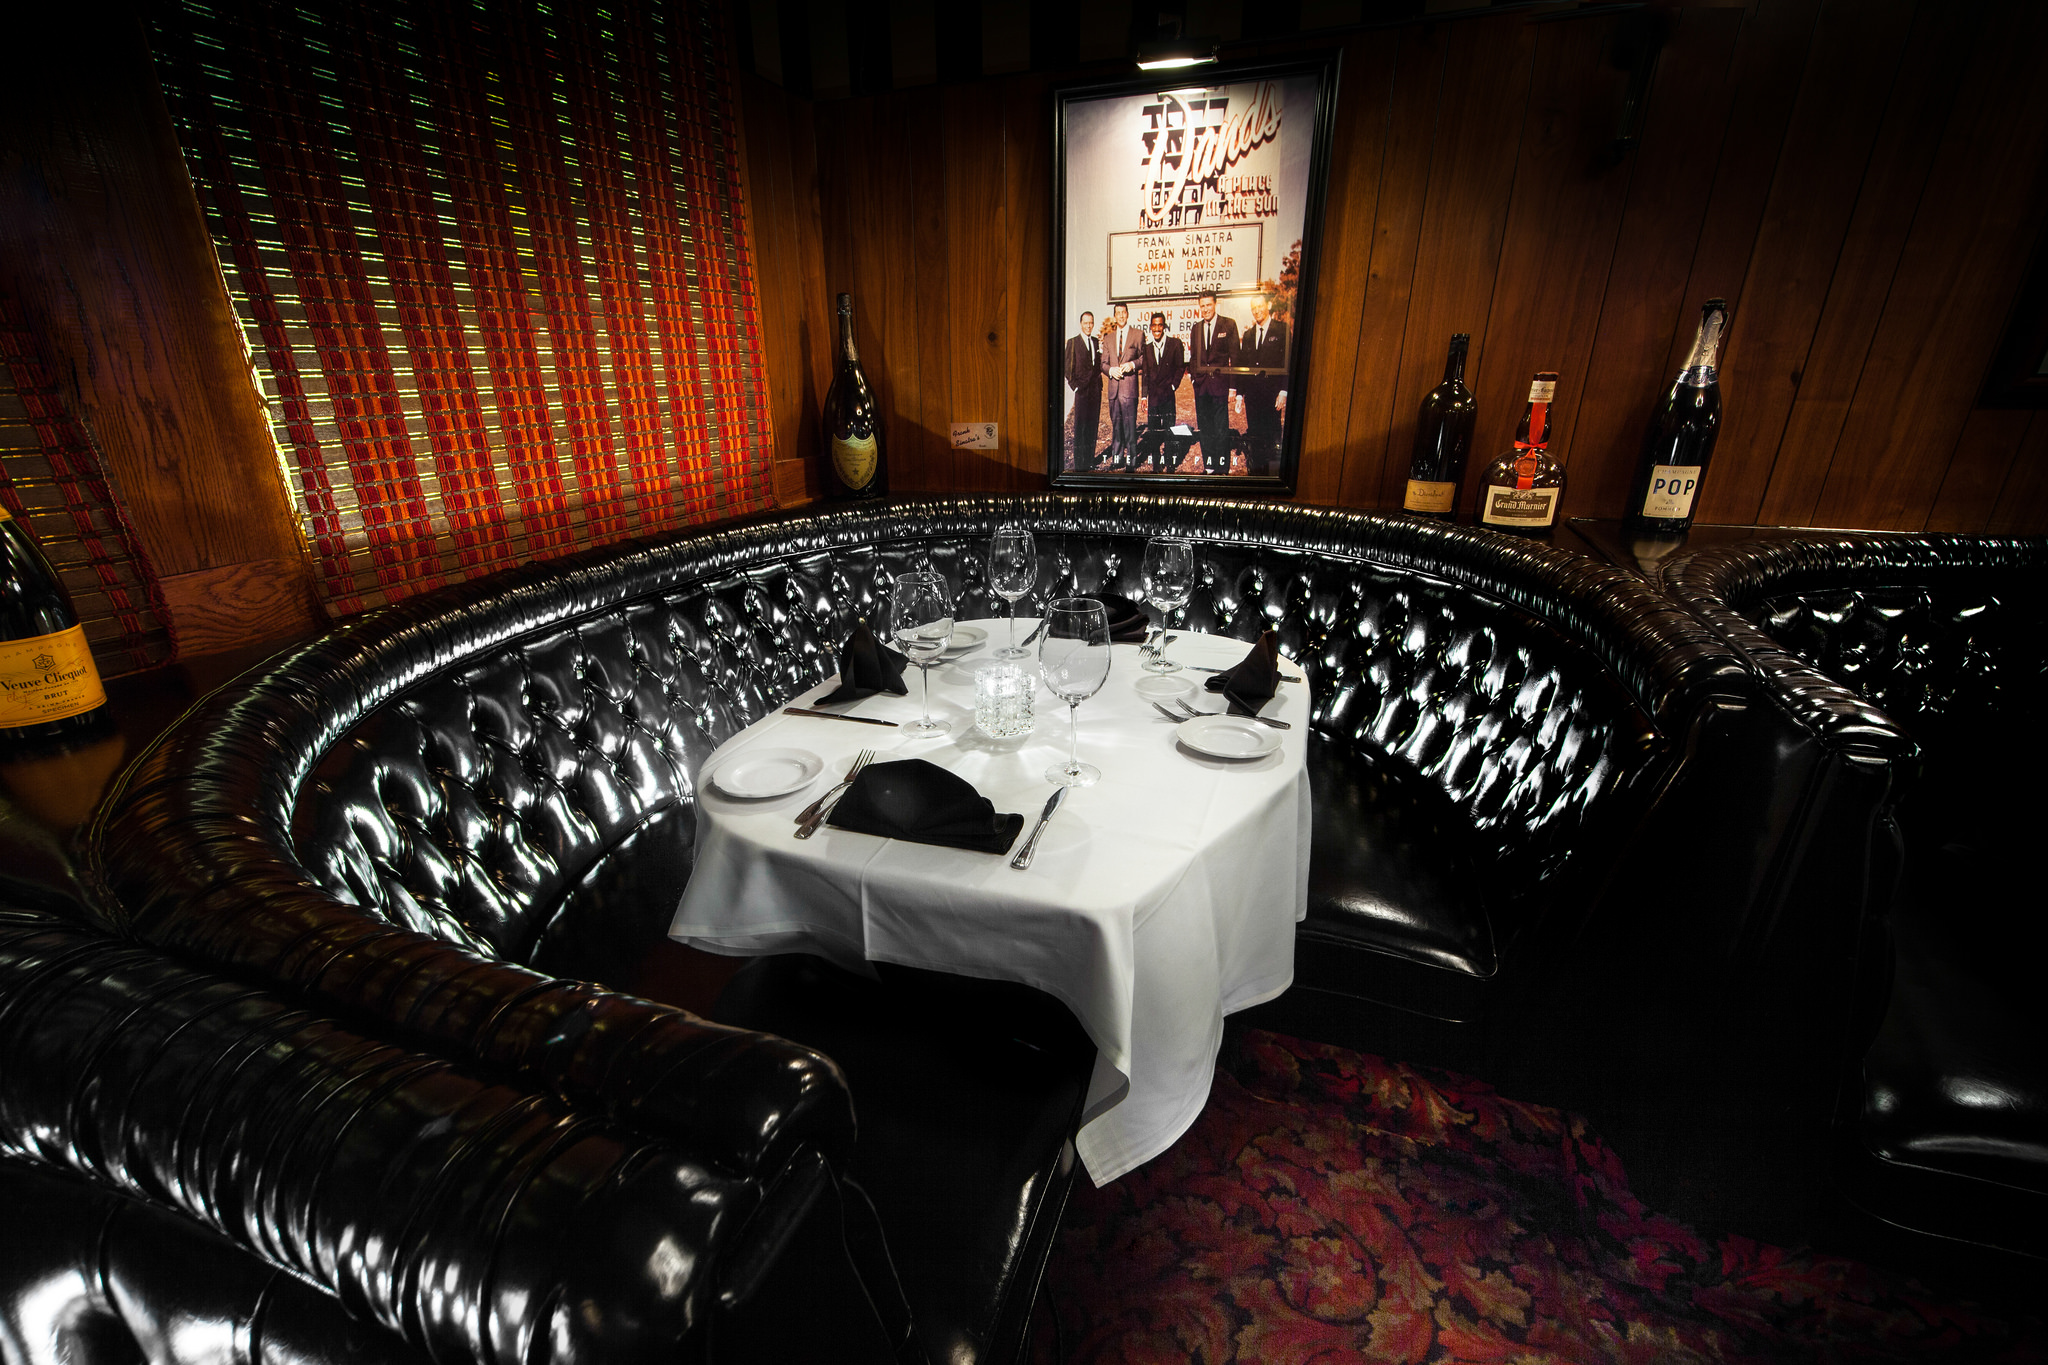 Celebrate Sinatra's 100th with a special meal at the Golden Steer ...